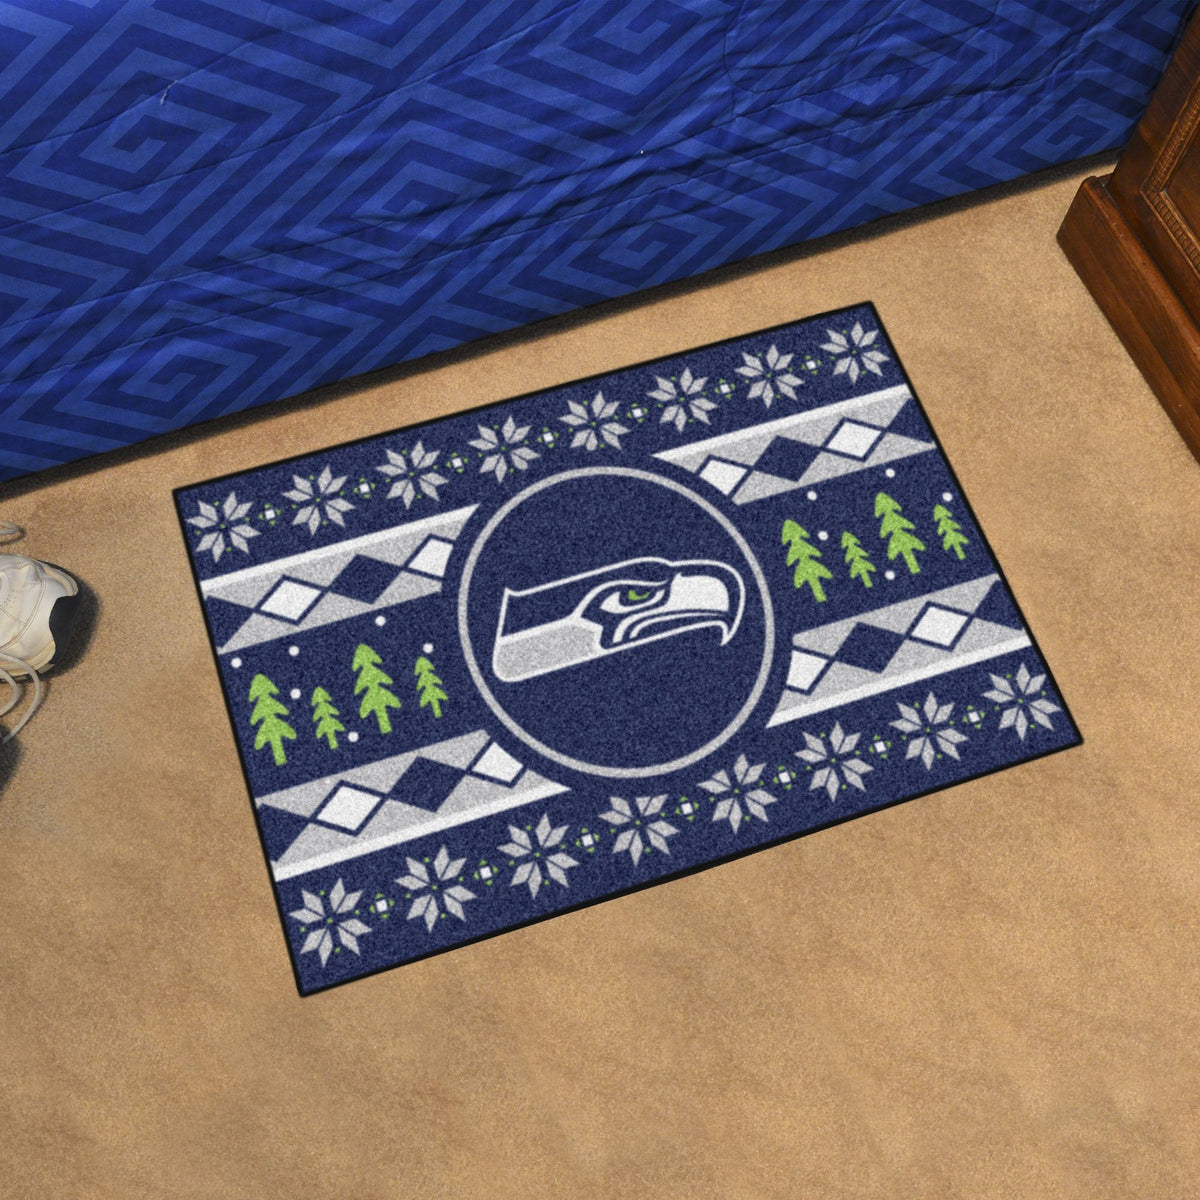 "NFL - Holiday Sweater Starter Mat, 19"" x 30"" NFL Mats, Rectangular Mats, Holiday Sweater Starter Mat, NFL, Home Fan Mats Seattle Seahawks"